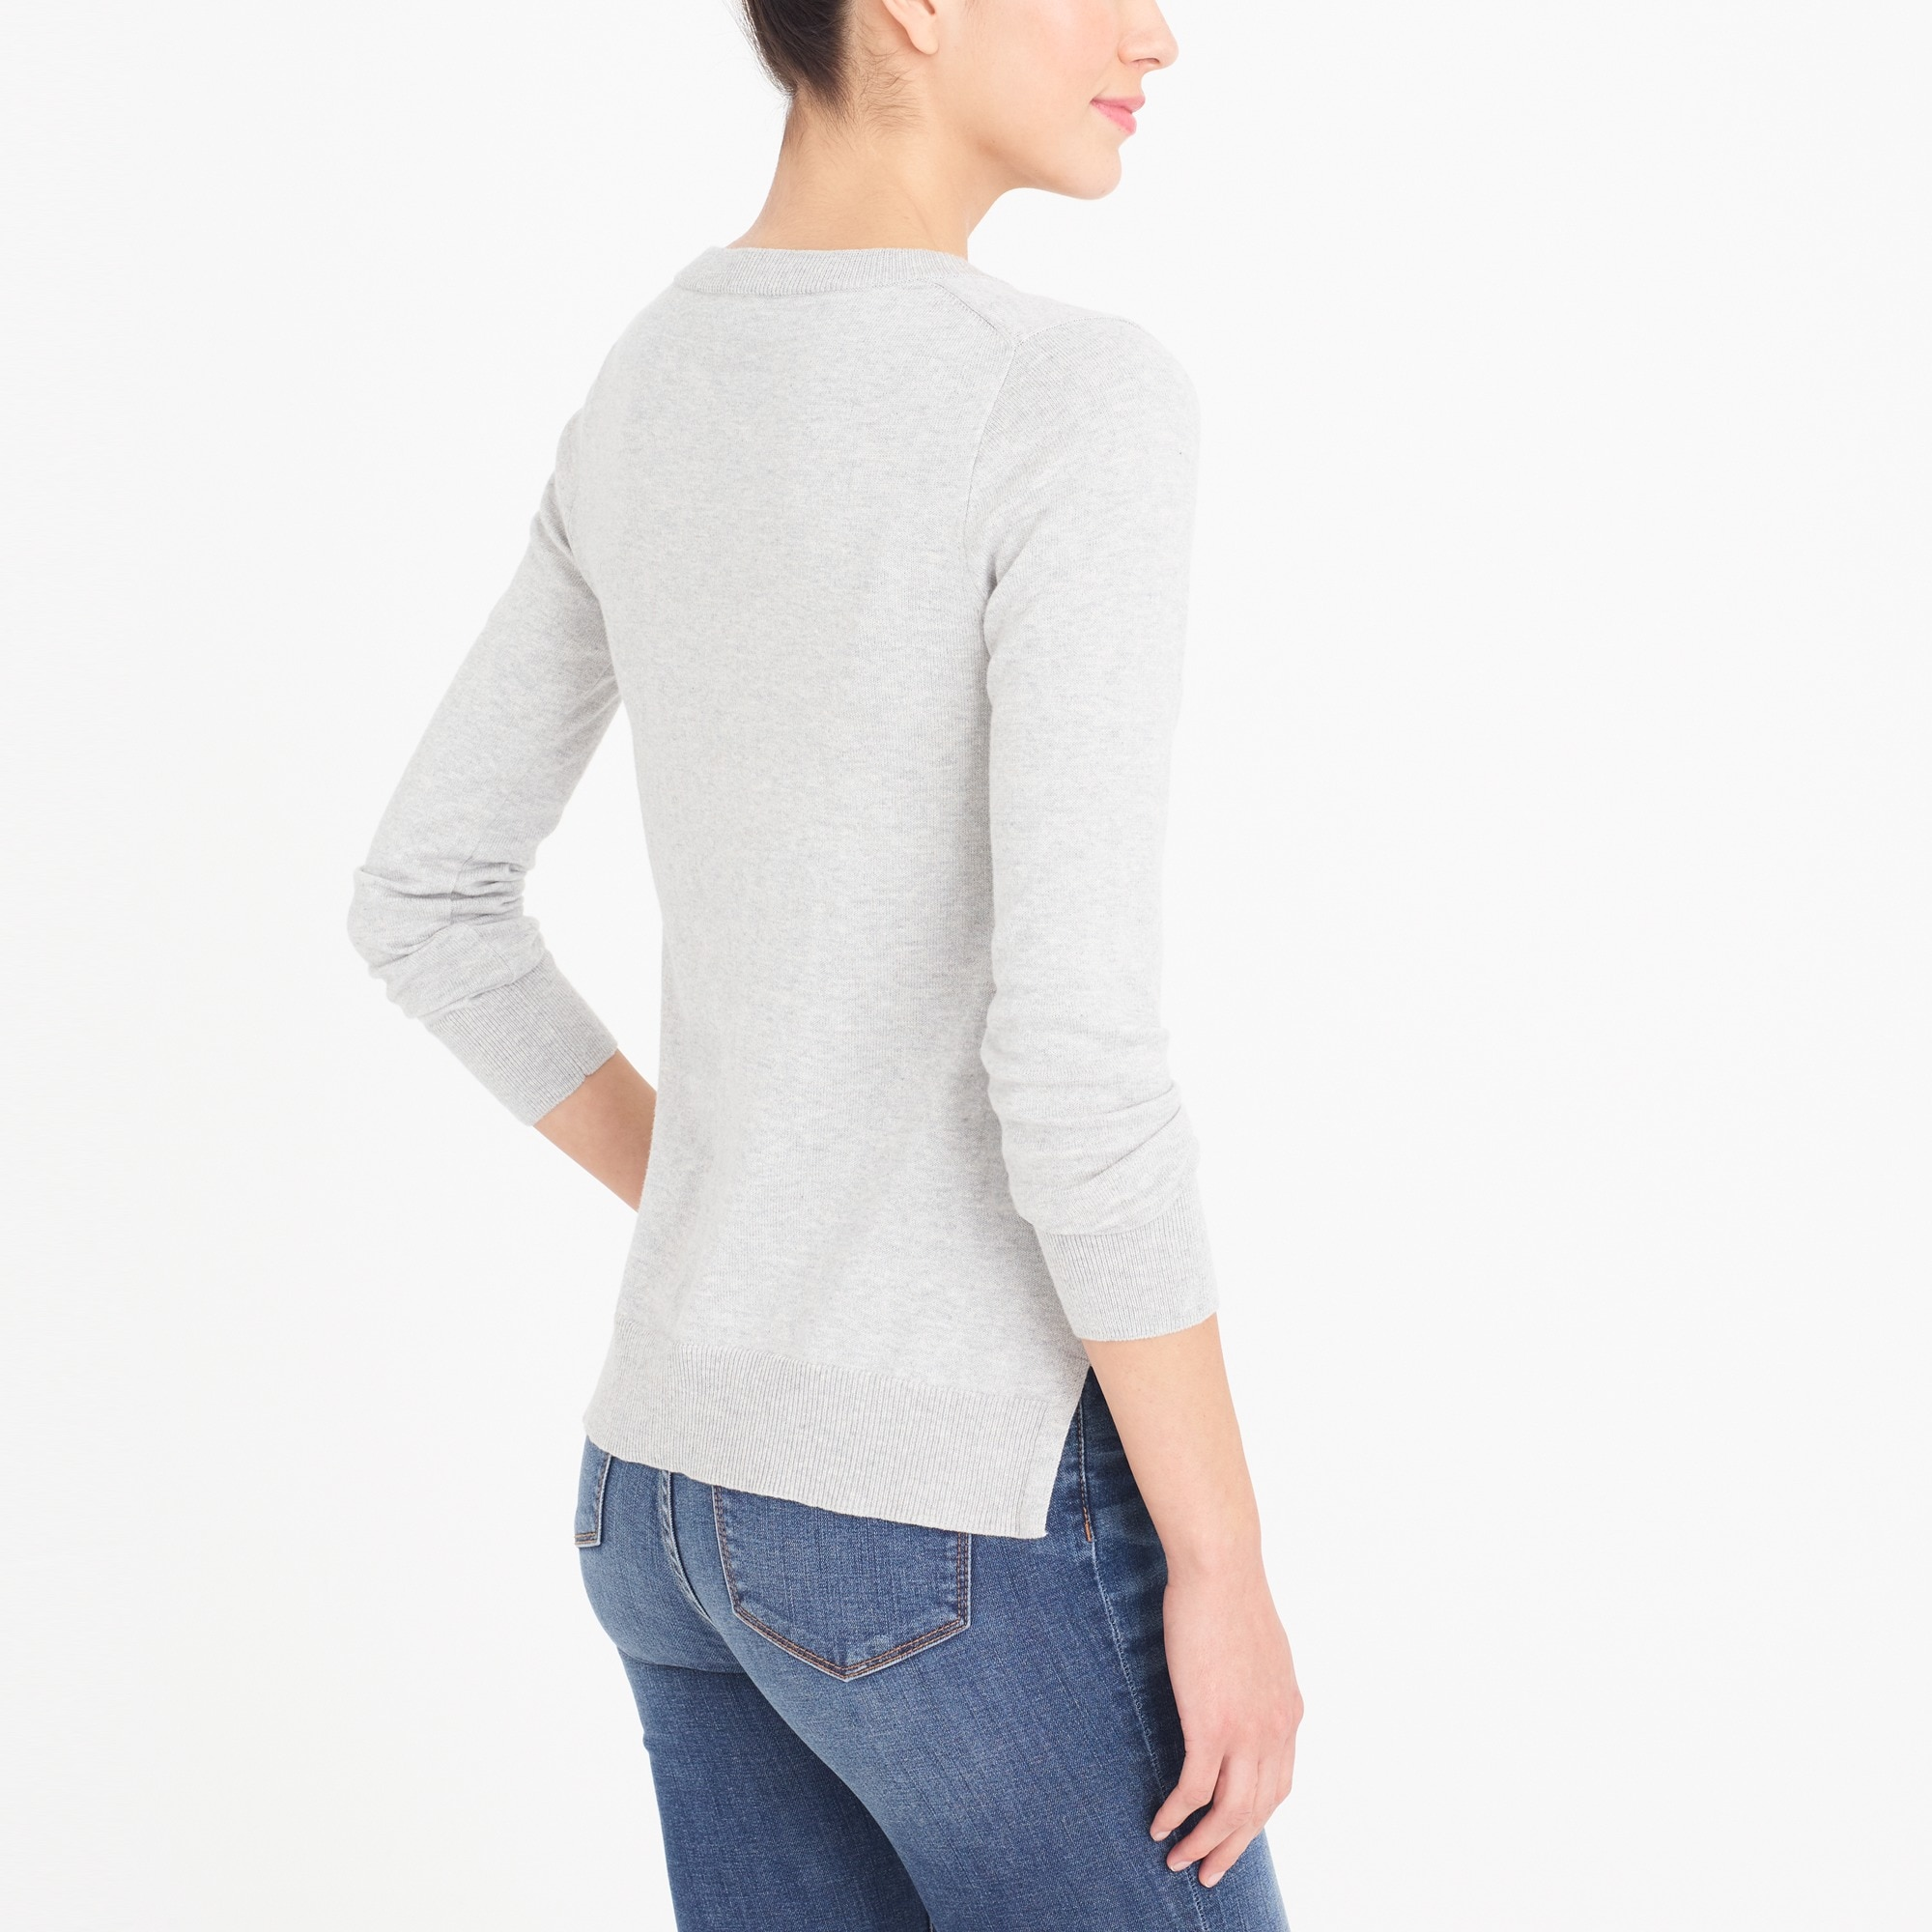 Image 2 for Cotton V-neck sweater